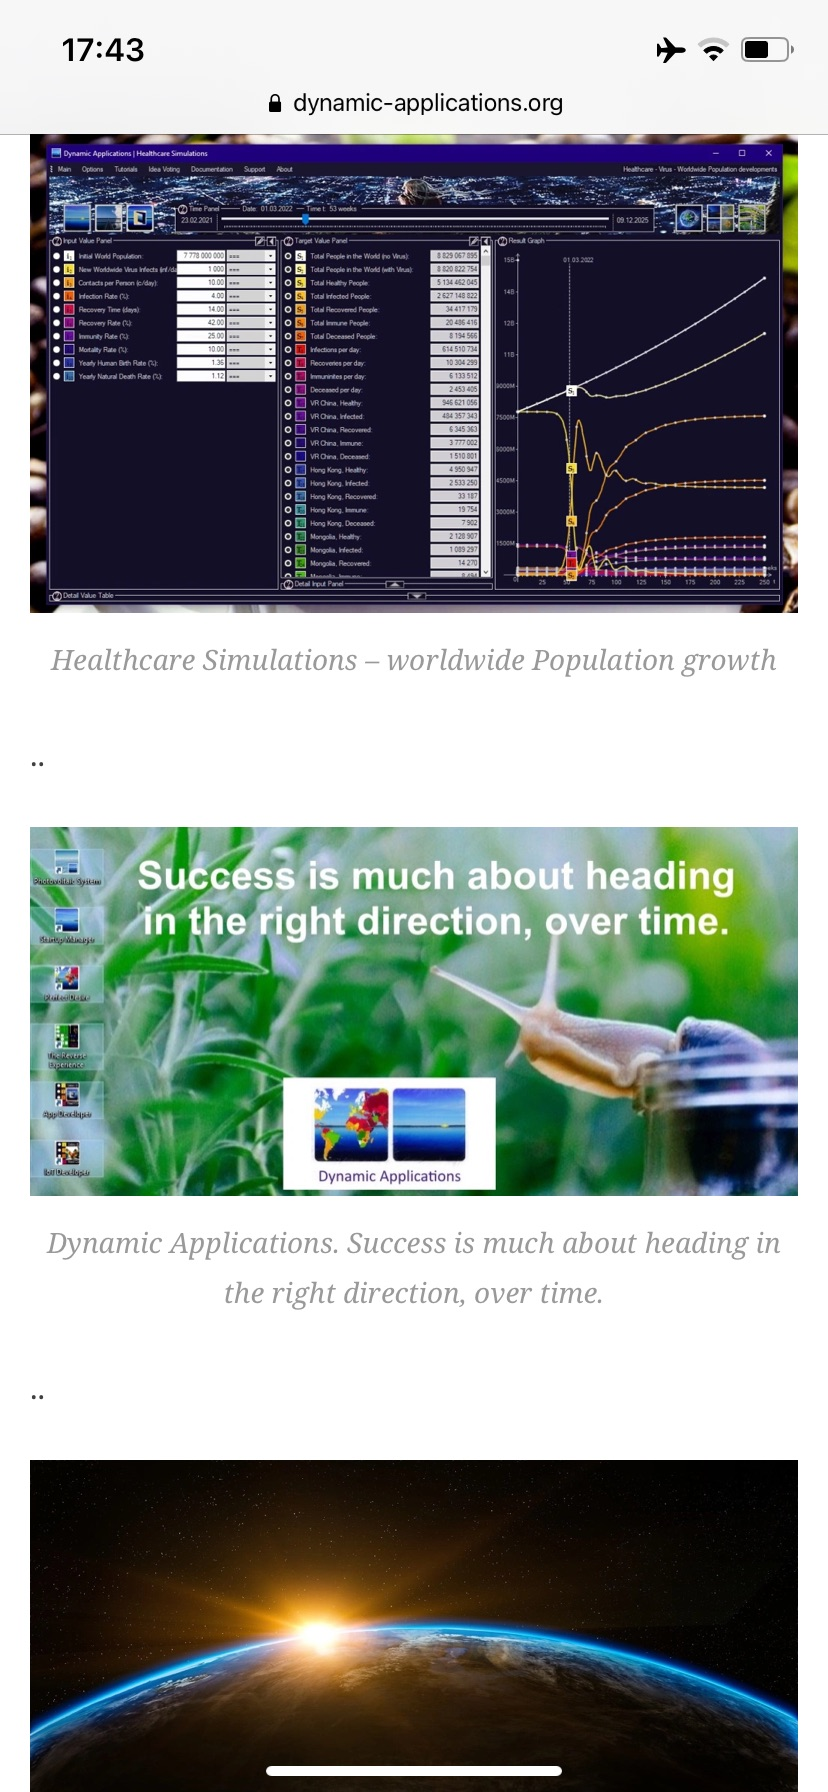 Dynamic Applications - Success is much about heading in the right direction over Time.